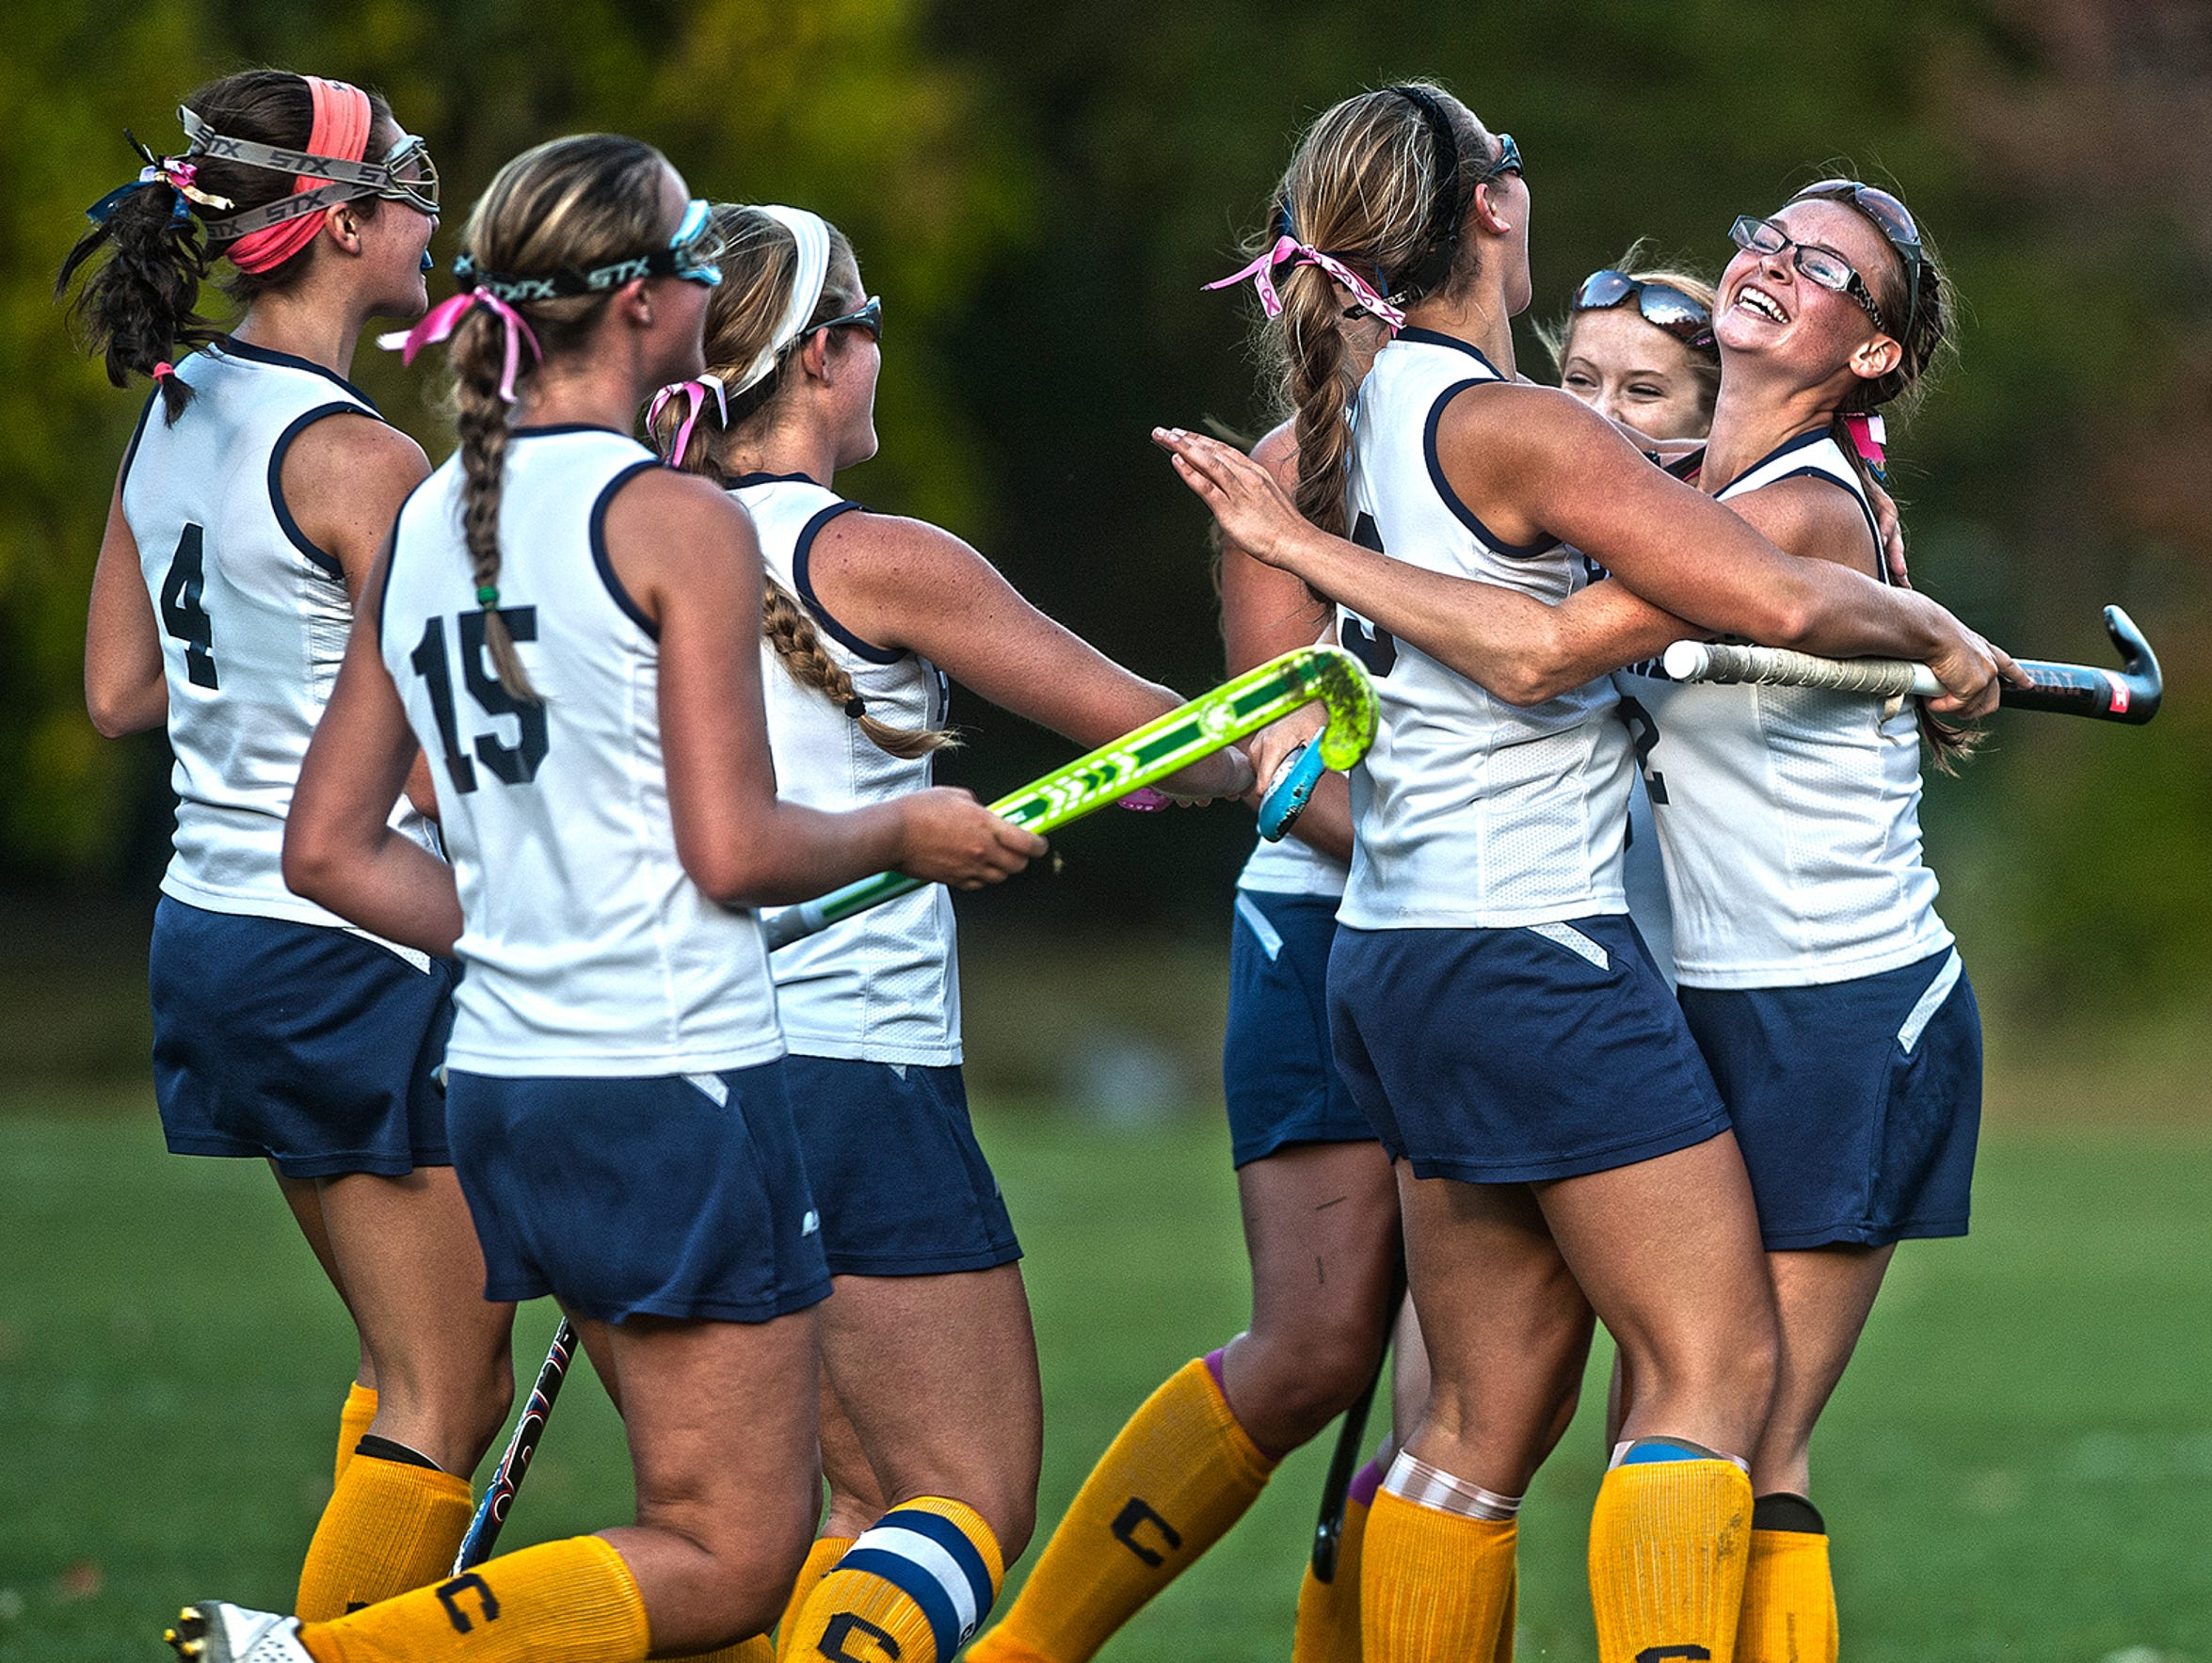 Varsity Field Hockey: West Deptford at Collingswood